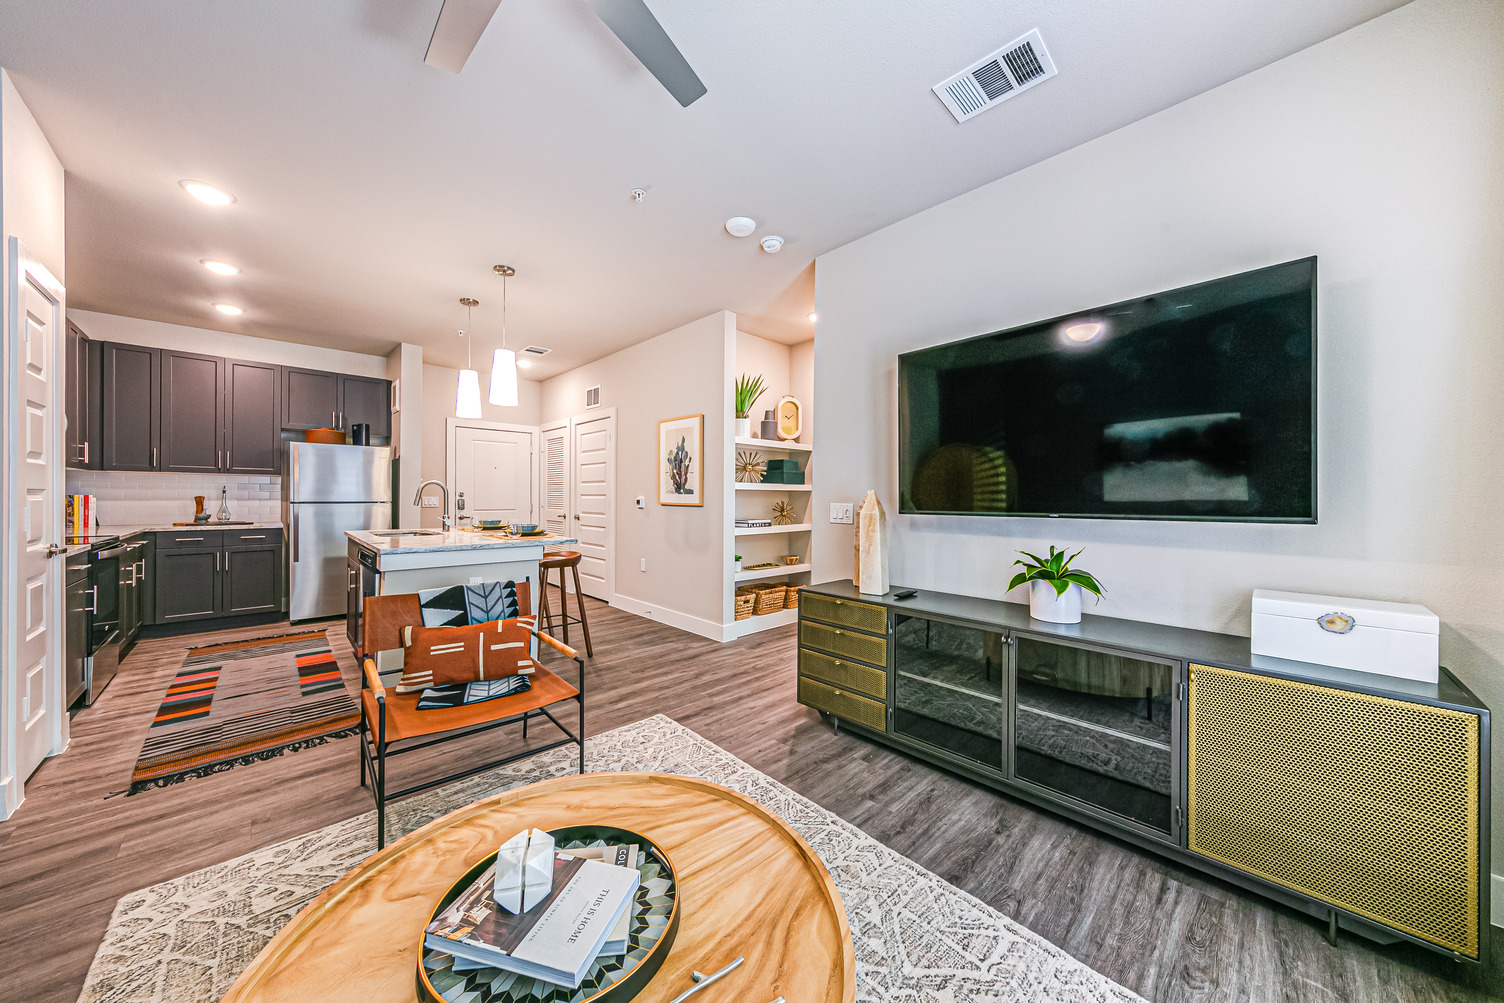 Model apartment with large TV console, built-in shelving, ceiling fan, recessed pendant lighting, and kitchen with island